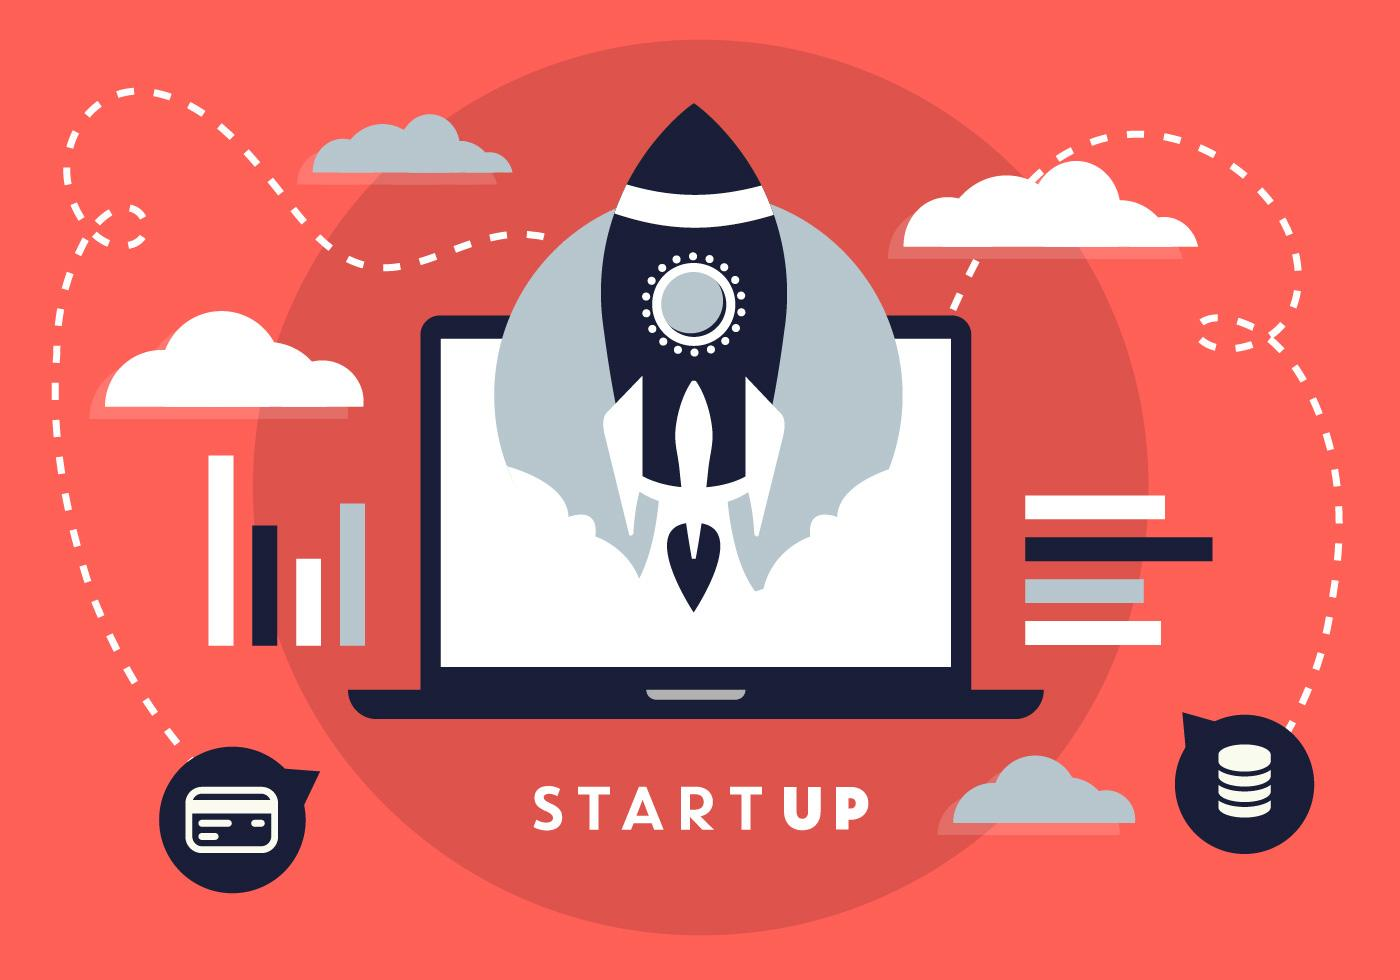 SMALL BUSINESS IDEAS FOR YOUNG ENTREPRENEURS